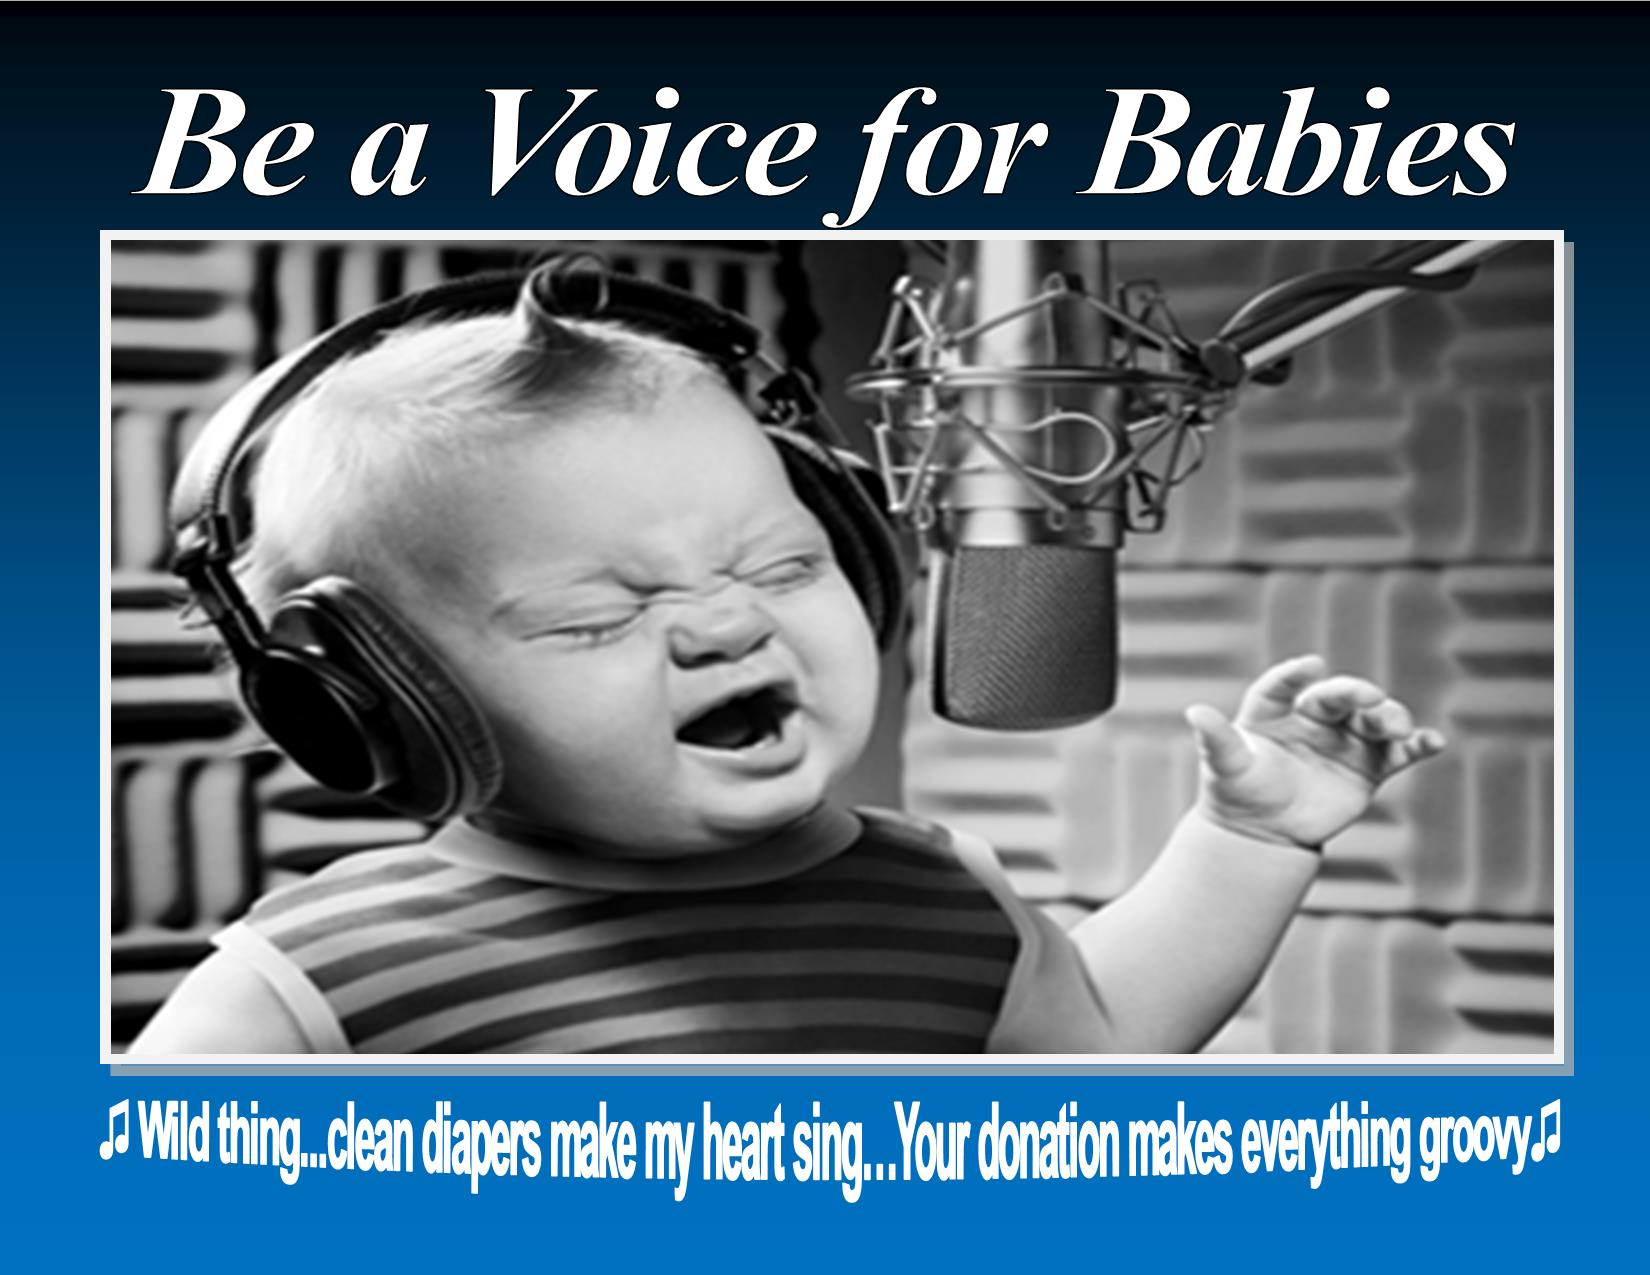 Be a Voice for Babies